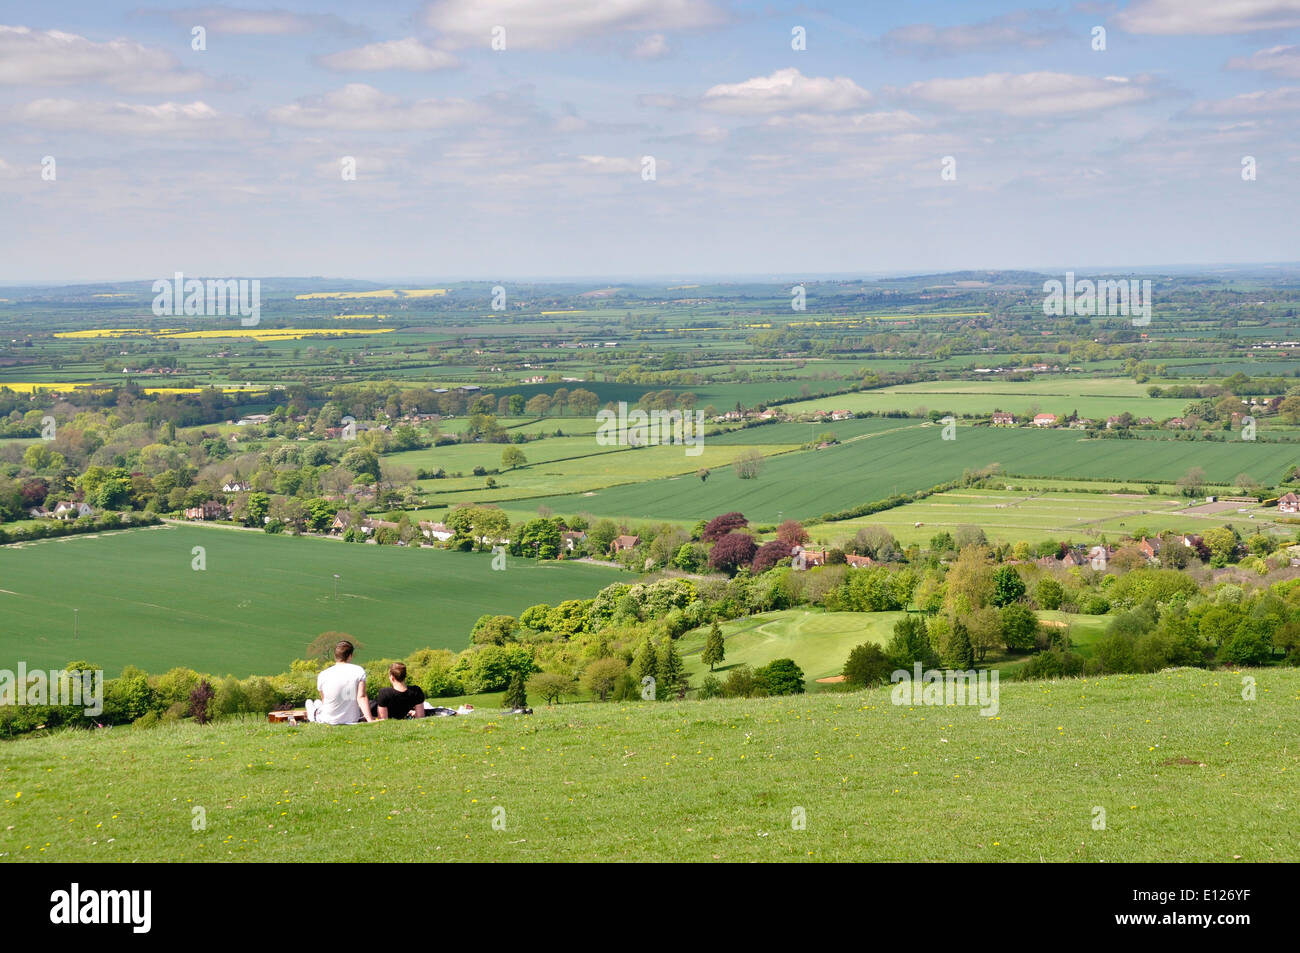 Bucks - Chiltern Hills - Coombe Hill - couple relaxing - enjoying wide view over Aylesbury plain - spring sunlight - blue sky - Stock Image